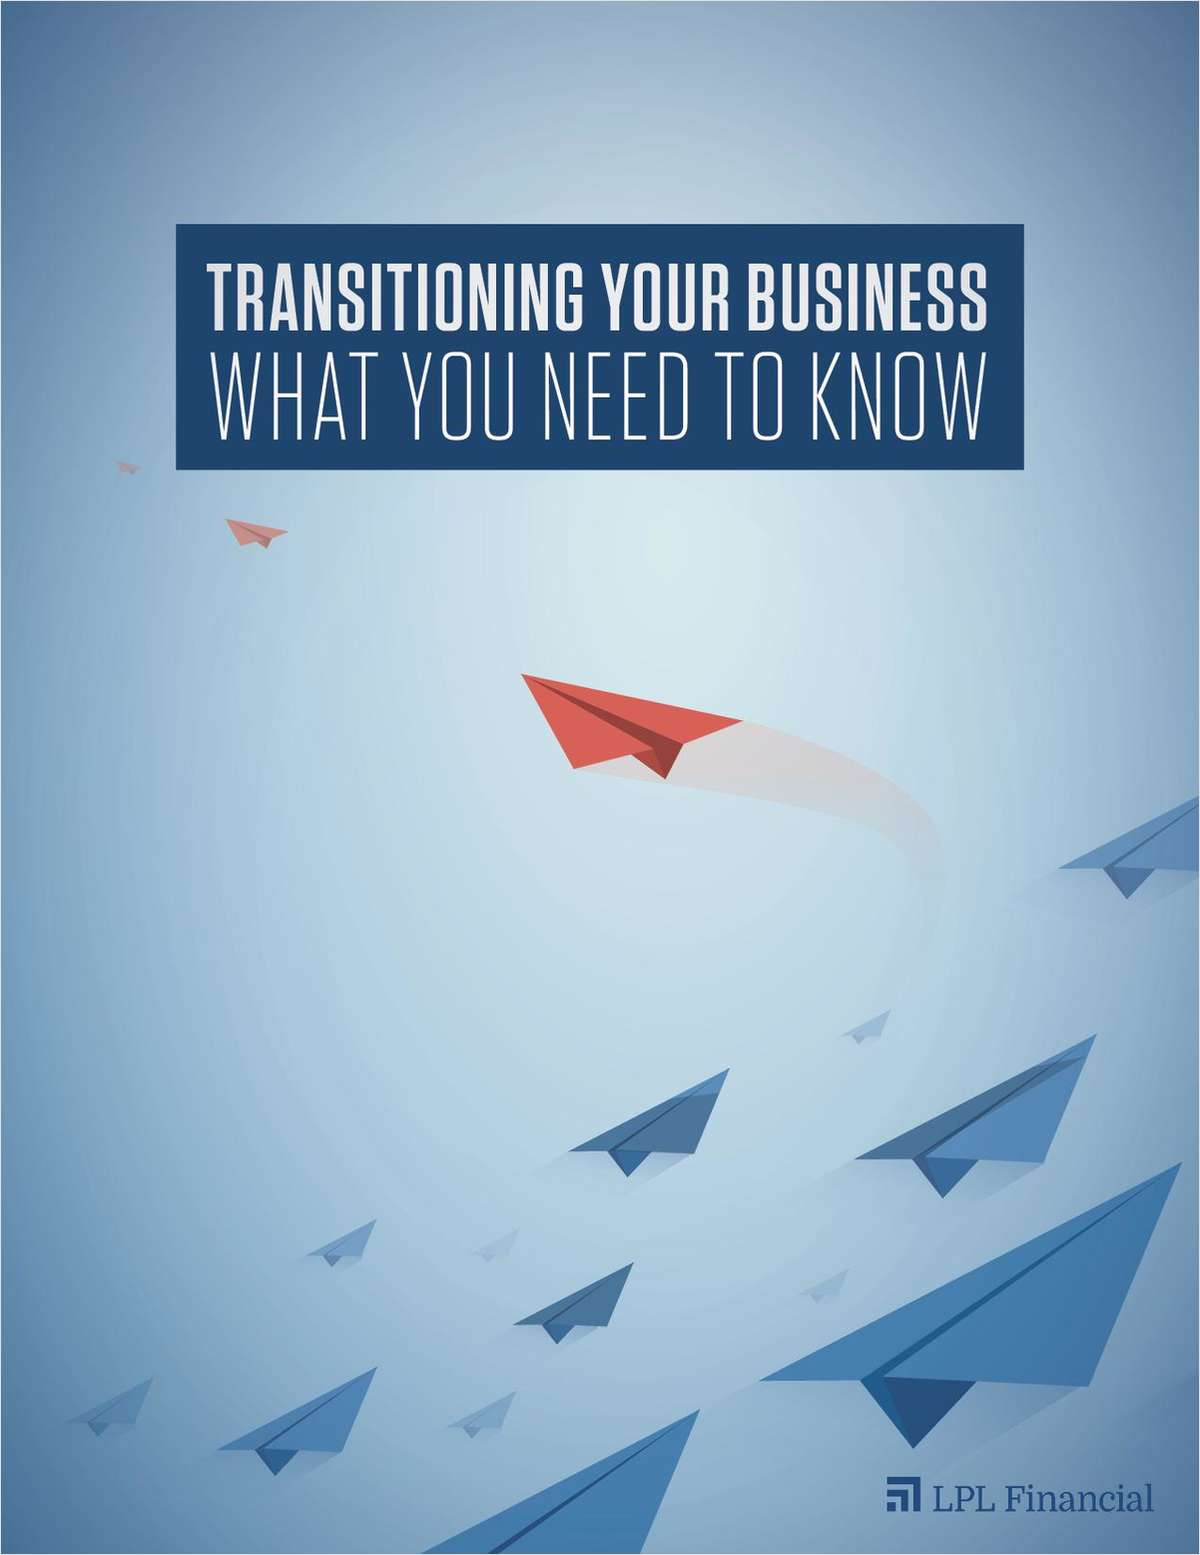 Transitioning Your Business: What You Need to Know